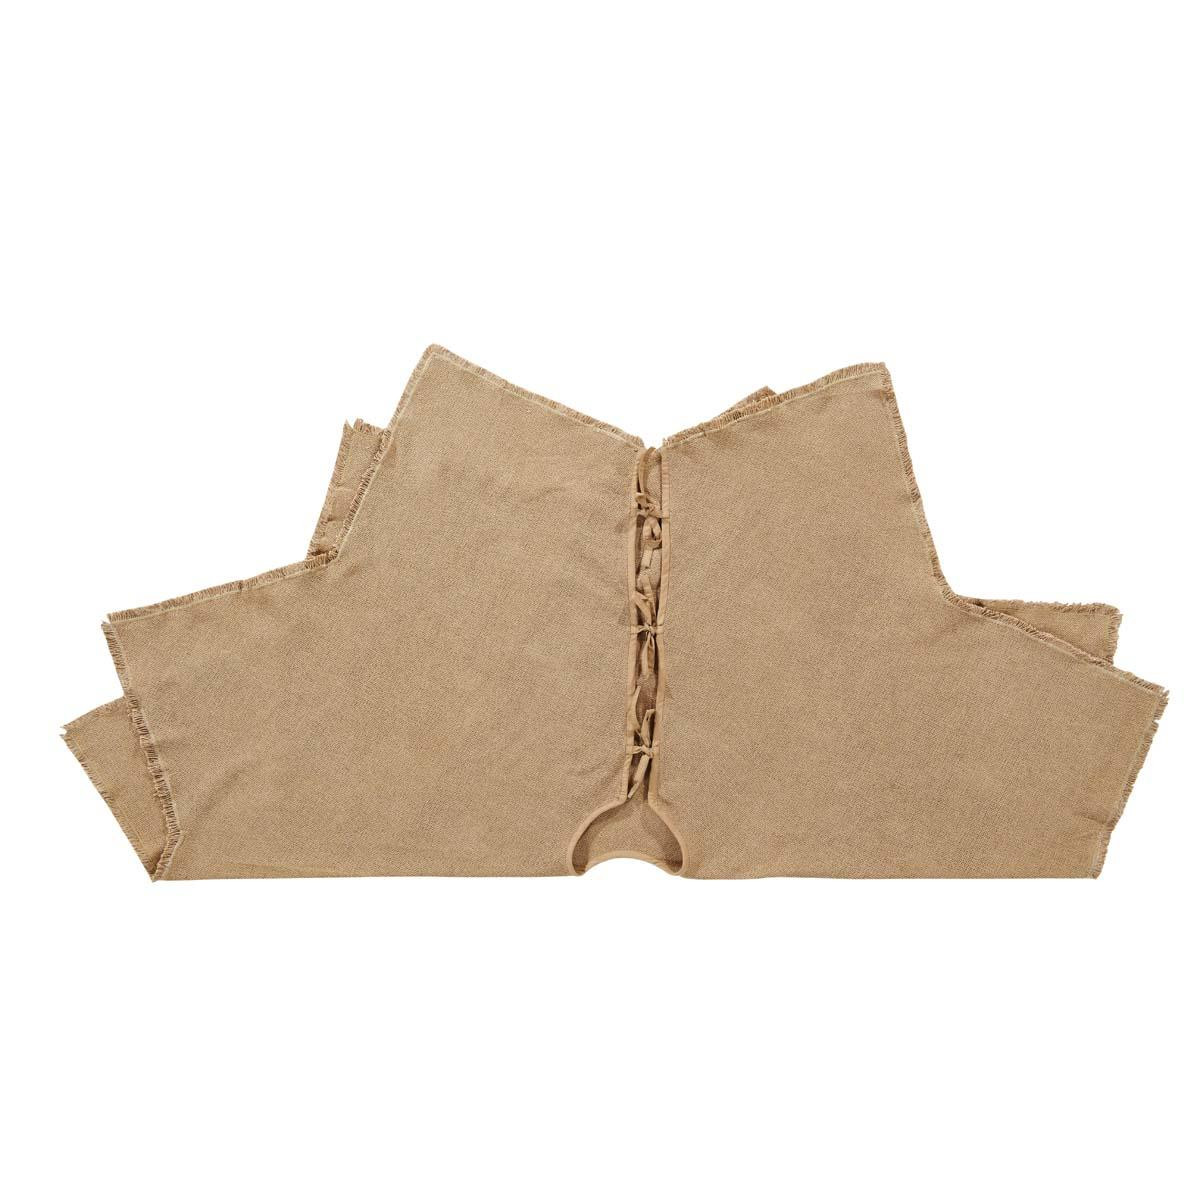 Burlap Natural Tree Skirt - 841985004108